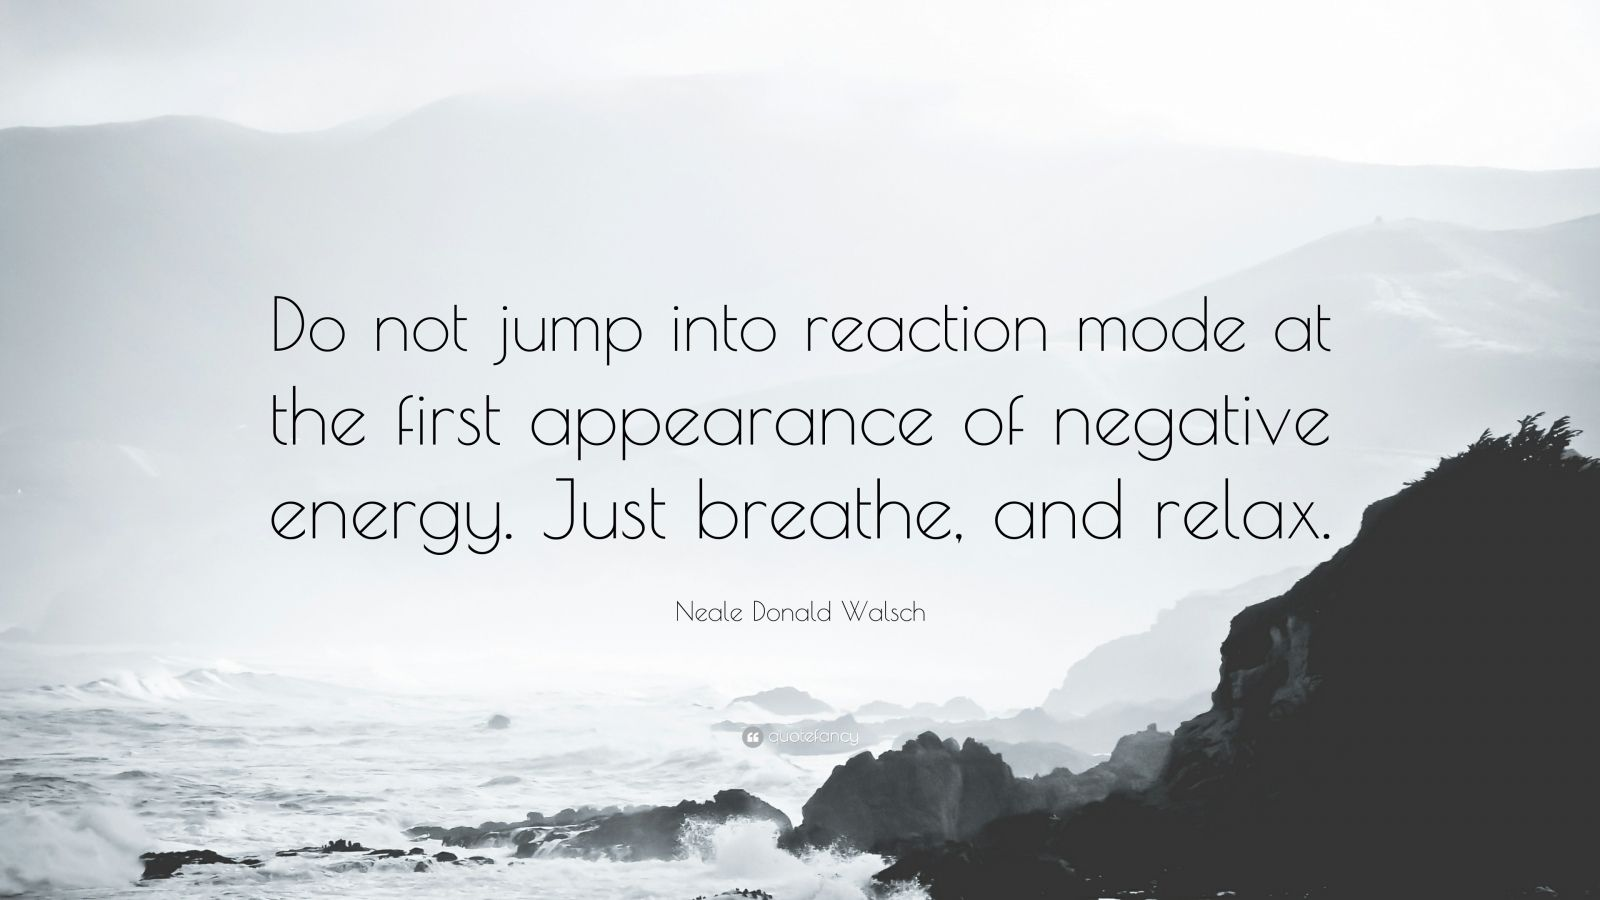 """Neale Donald Walsch Quote: """"Do not jump into reaction mode at the first appearance of negative energy. Just breathe, and relax."""""""